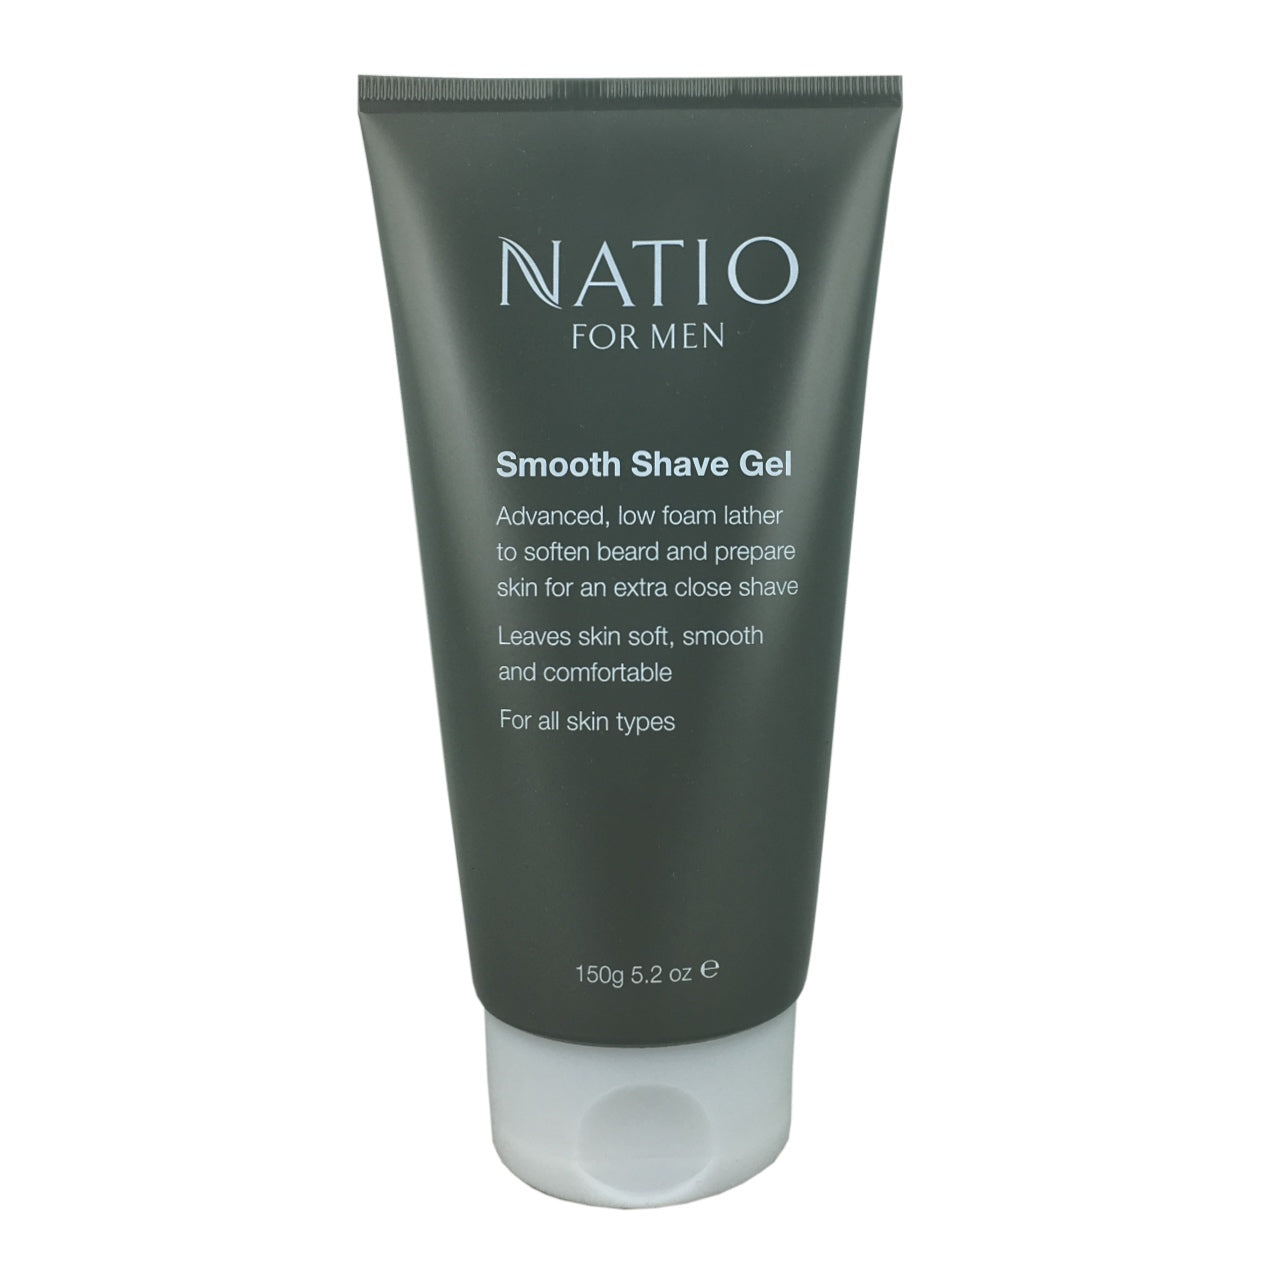 Natio For Men Smooth Shave Gel 150g